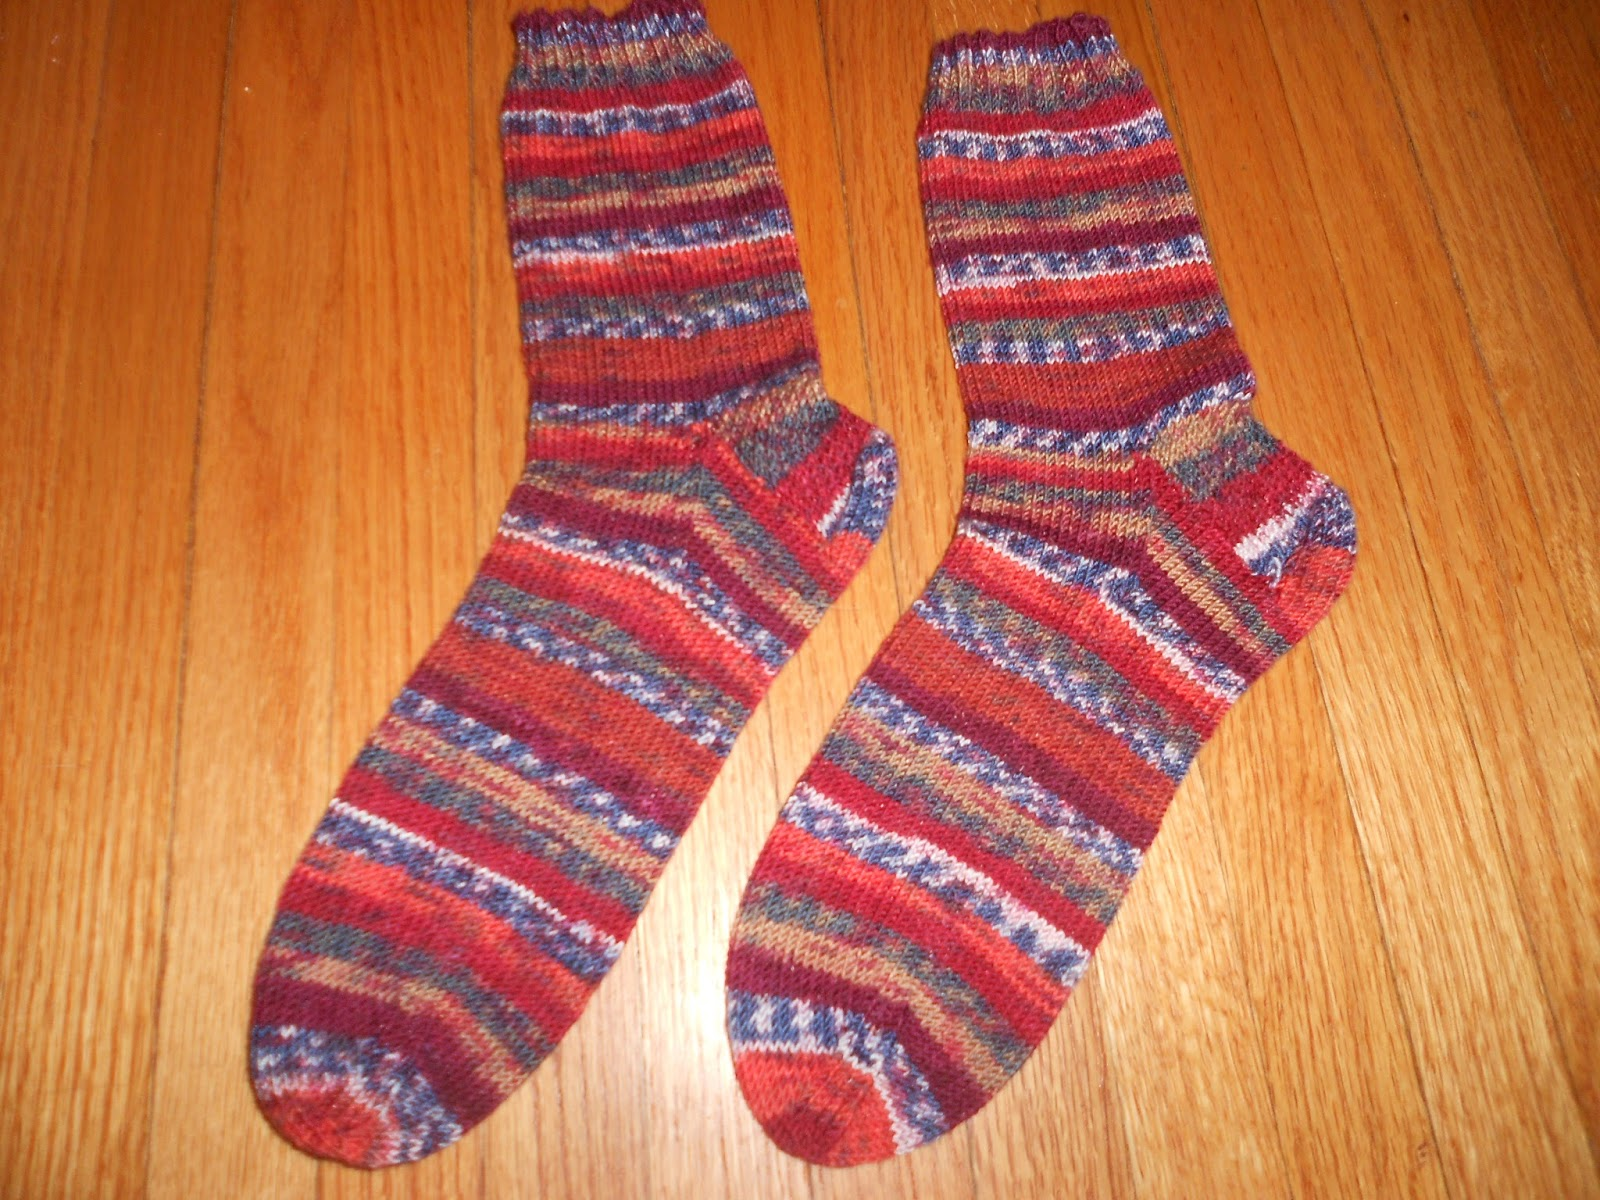 Knitting Pattern For Basic Socks : Knitting II: Basic Knit Sock